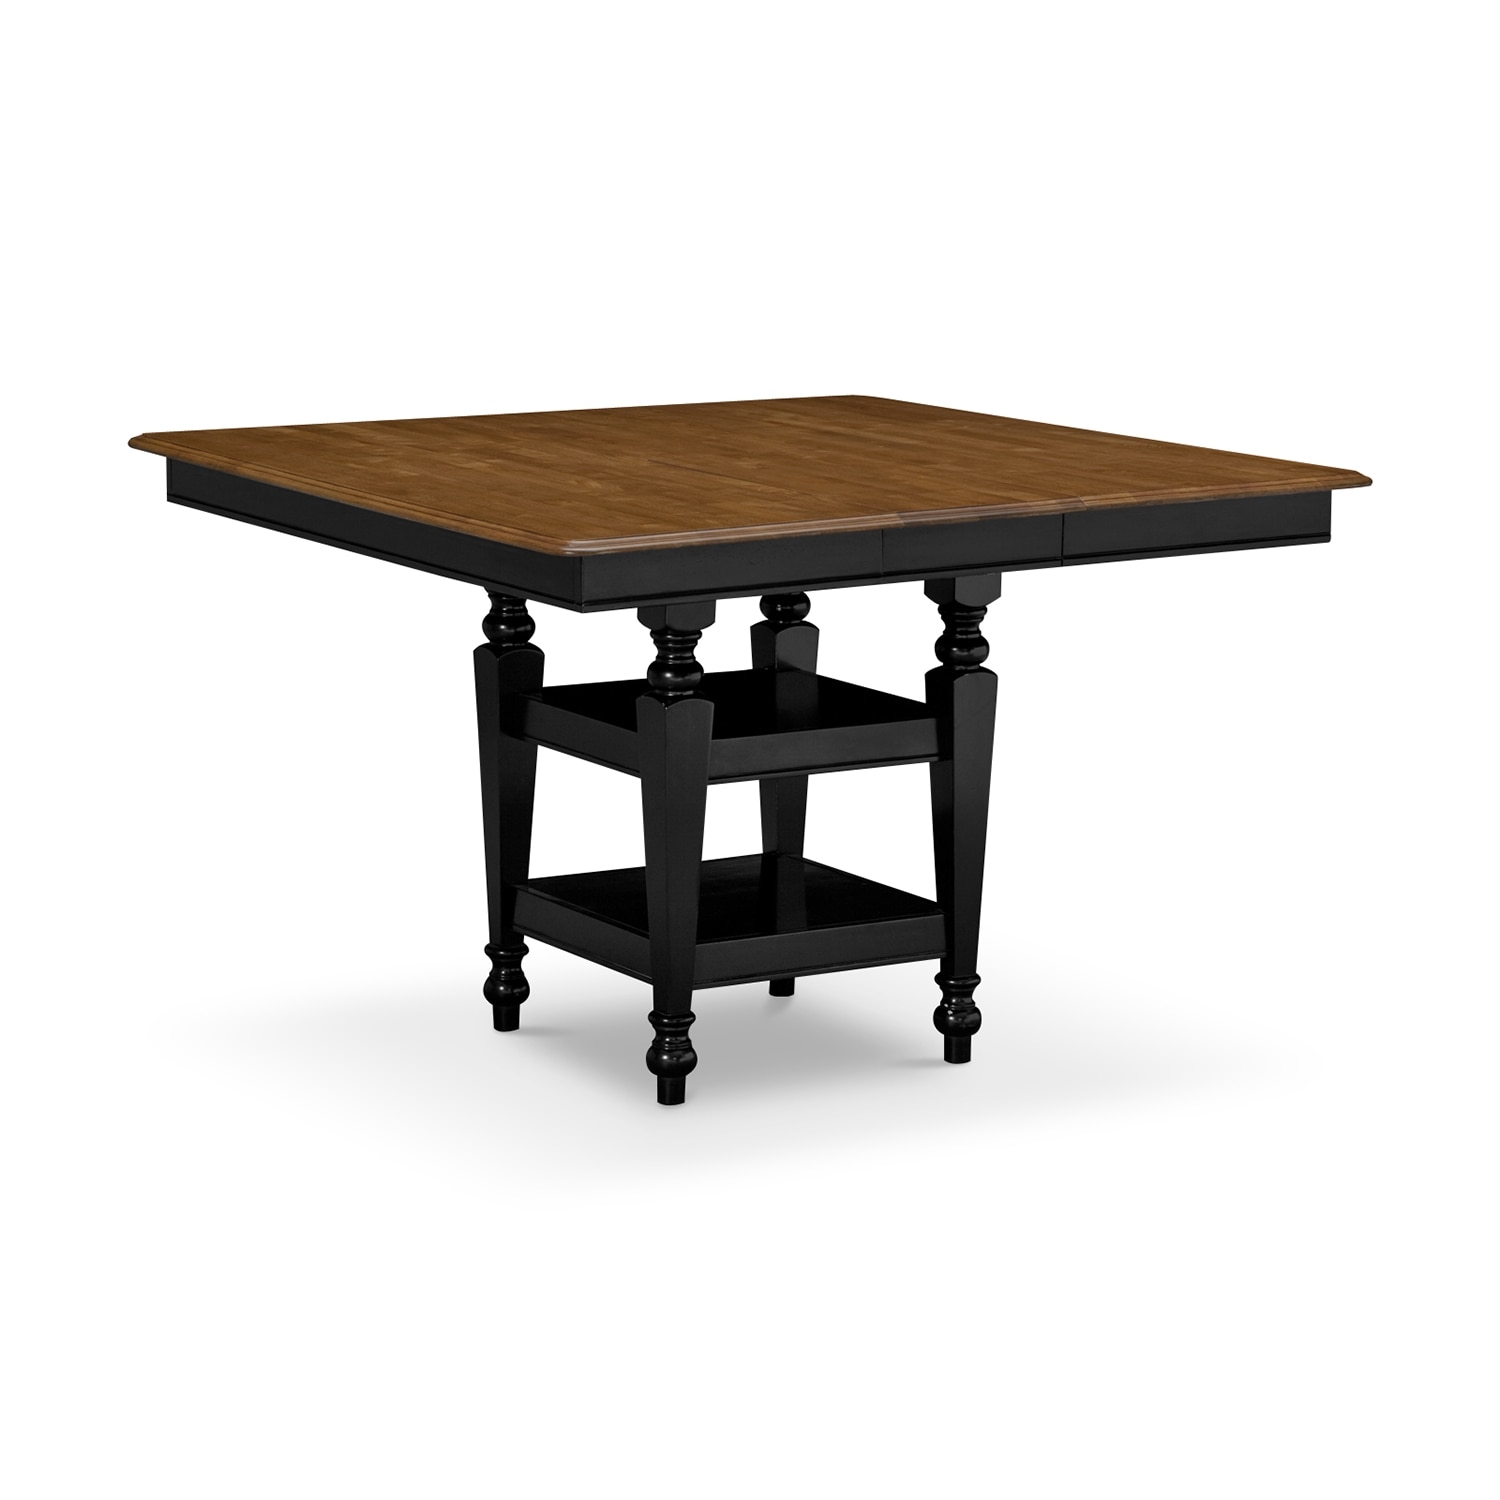 Mystic Dining Room Counter Height Table Value City  : 270750 from anshparamedics.com size 1500 x 1500 jpeg 211kB